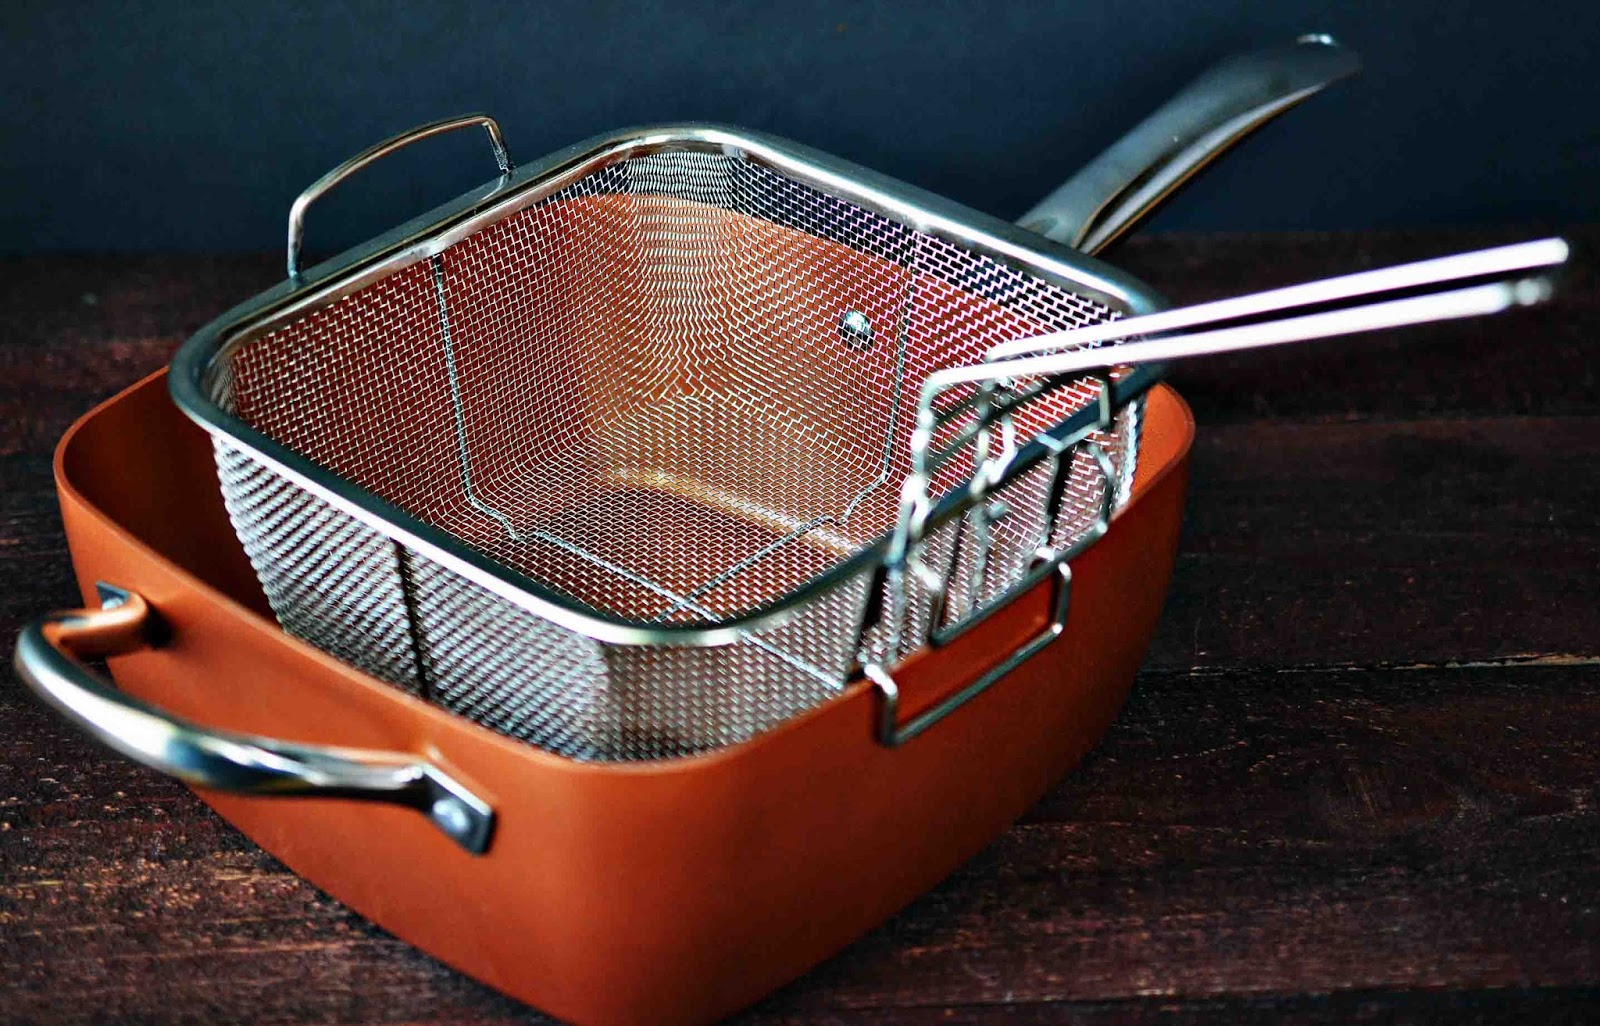 Theresa S Mixed Nuts Copper Chef Cookware Helps You Cook